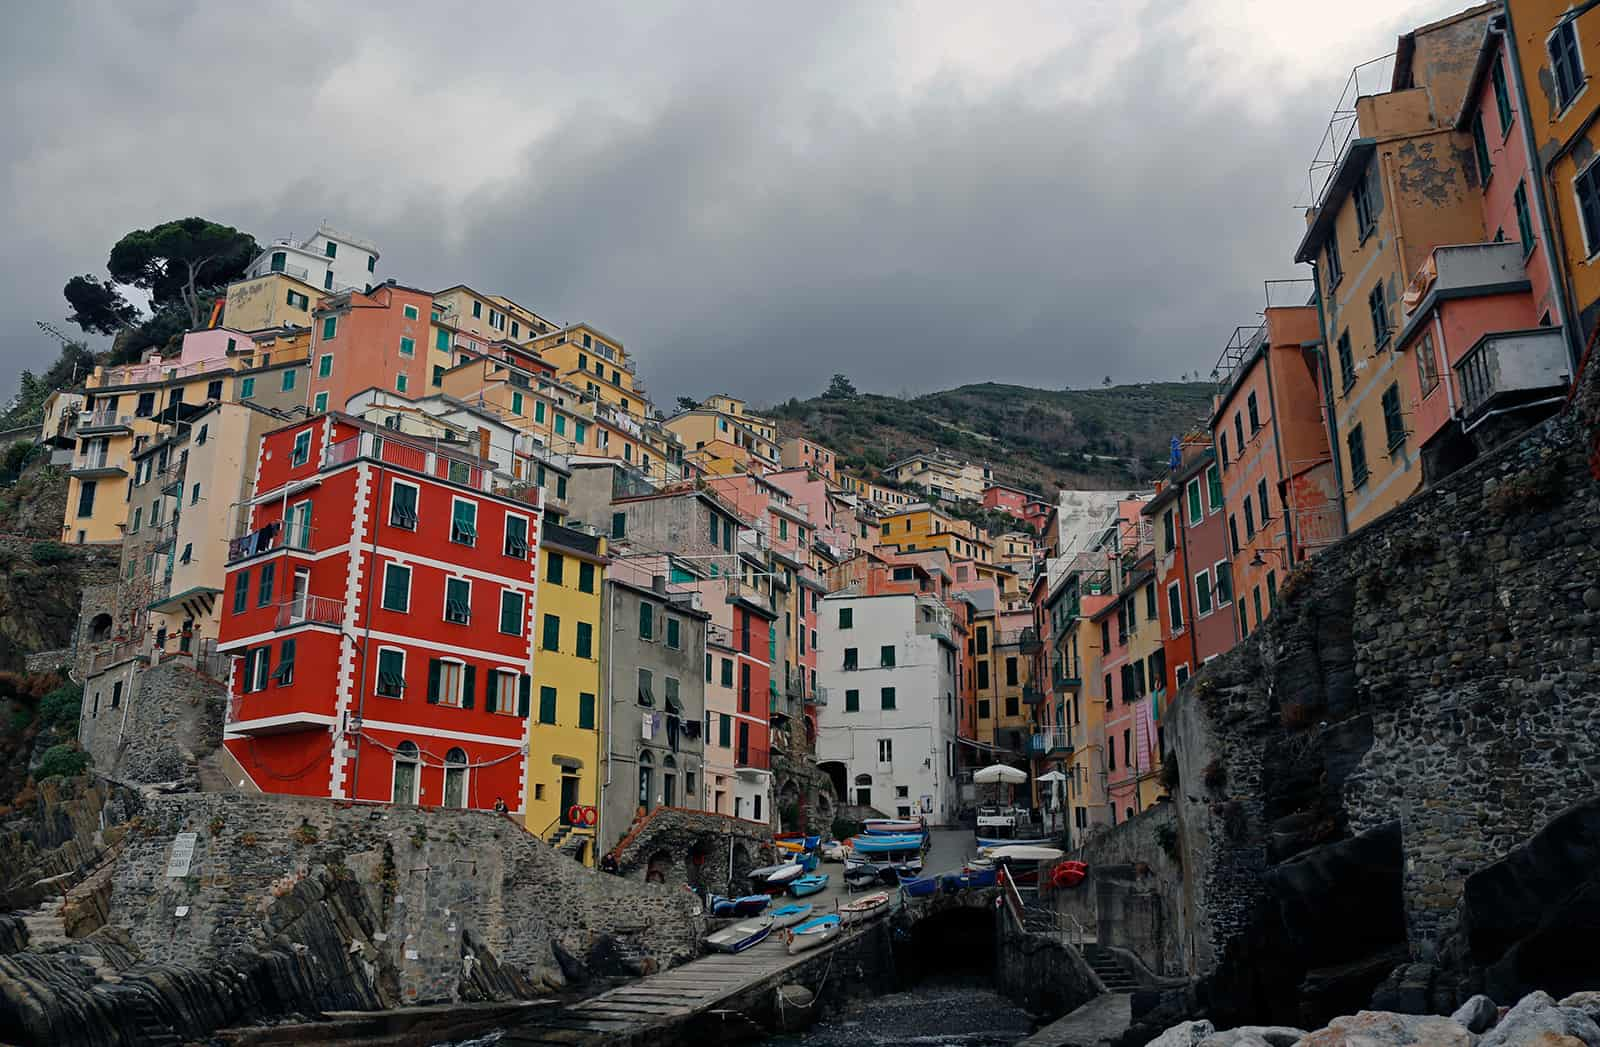 Leftover waves from yesterdays swell were to shitty even for a starved lanlocked surfer so we hit the first Cinque Terre village from the south once you pass La Spezia - Riomaggiore.